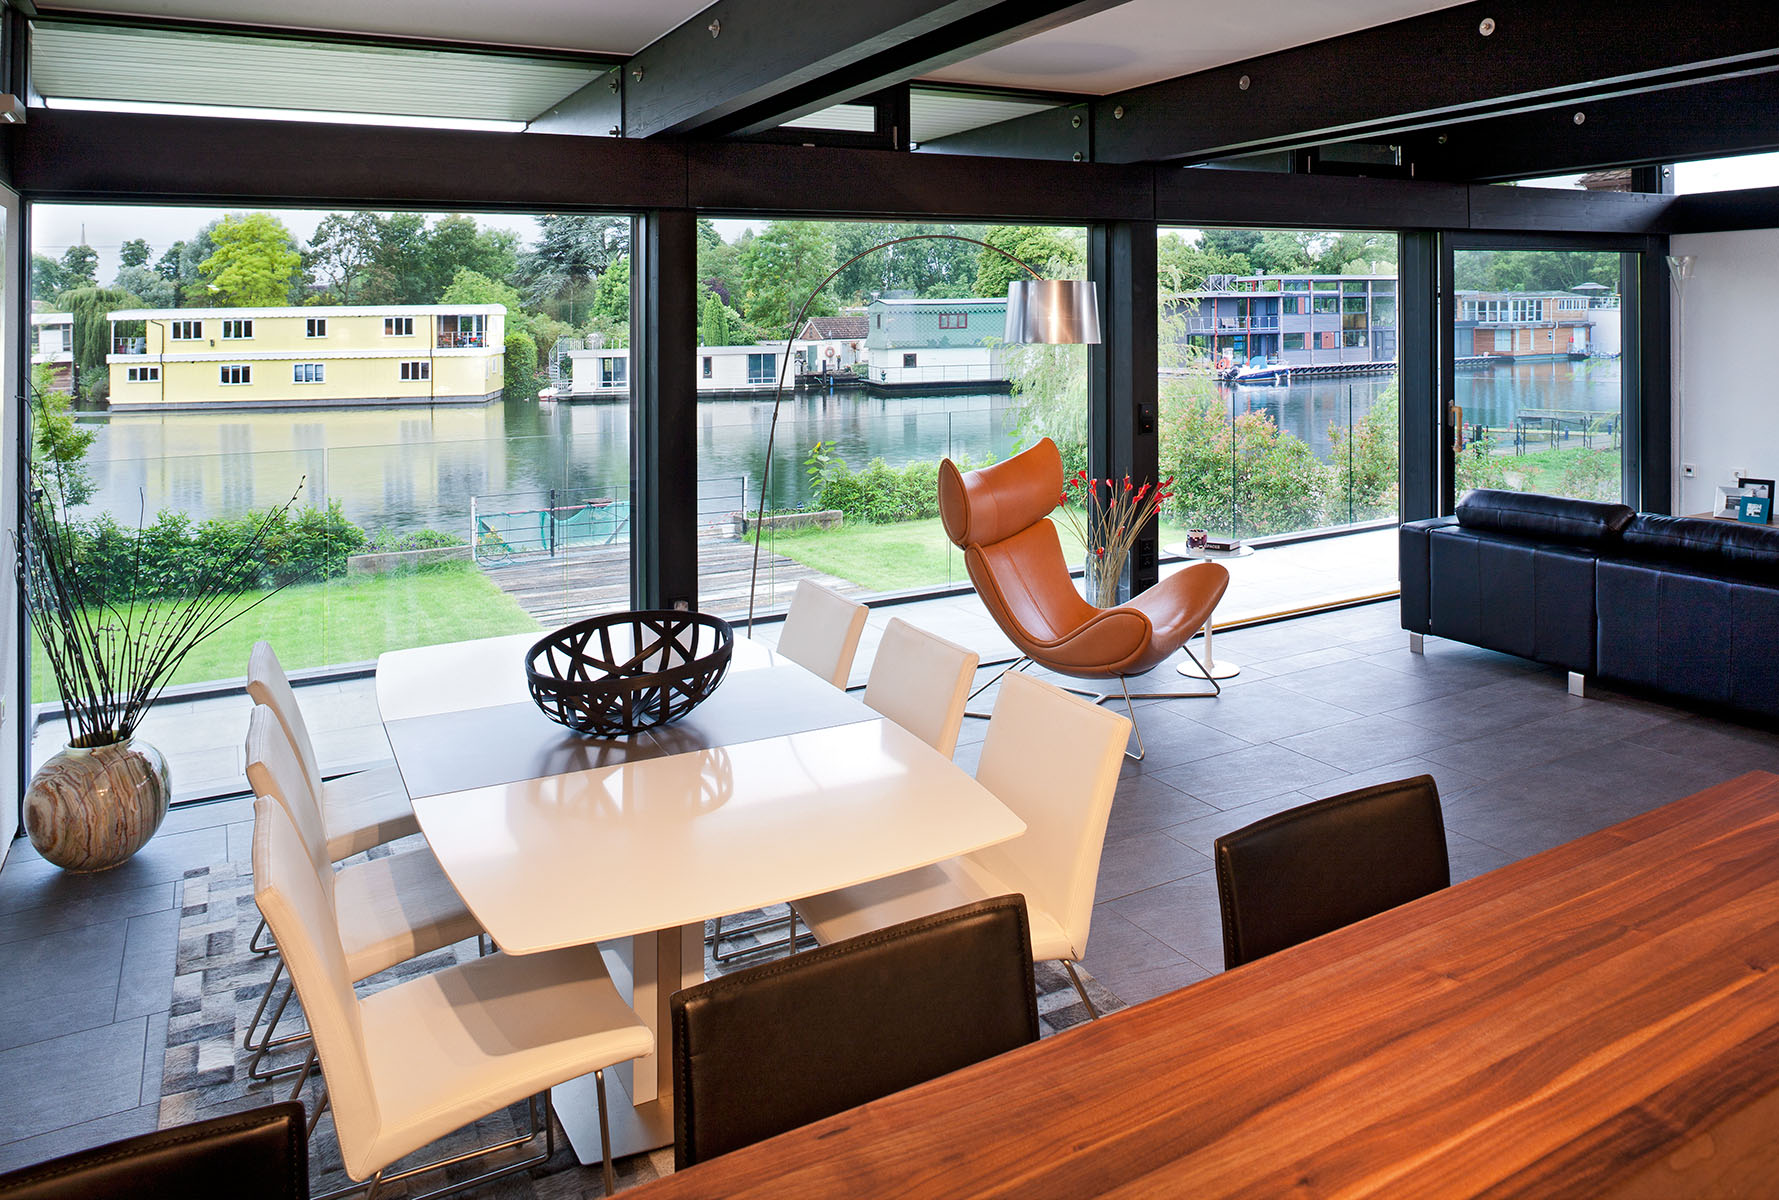 Interior Design project for Huf Haus by River Thames. Client: Bo Concept